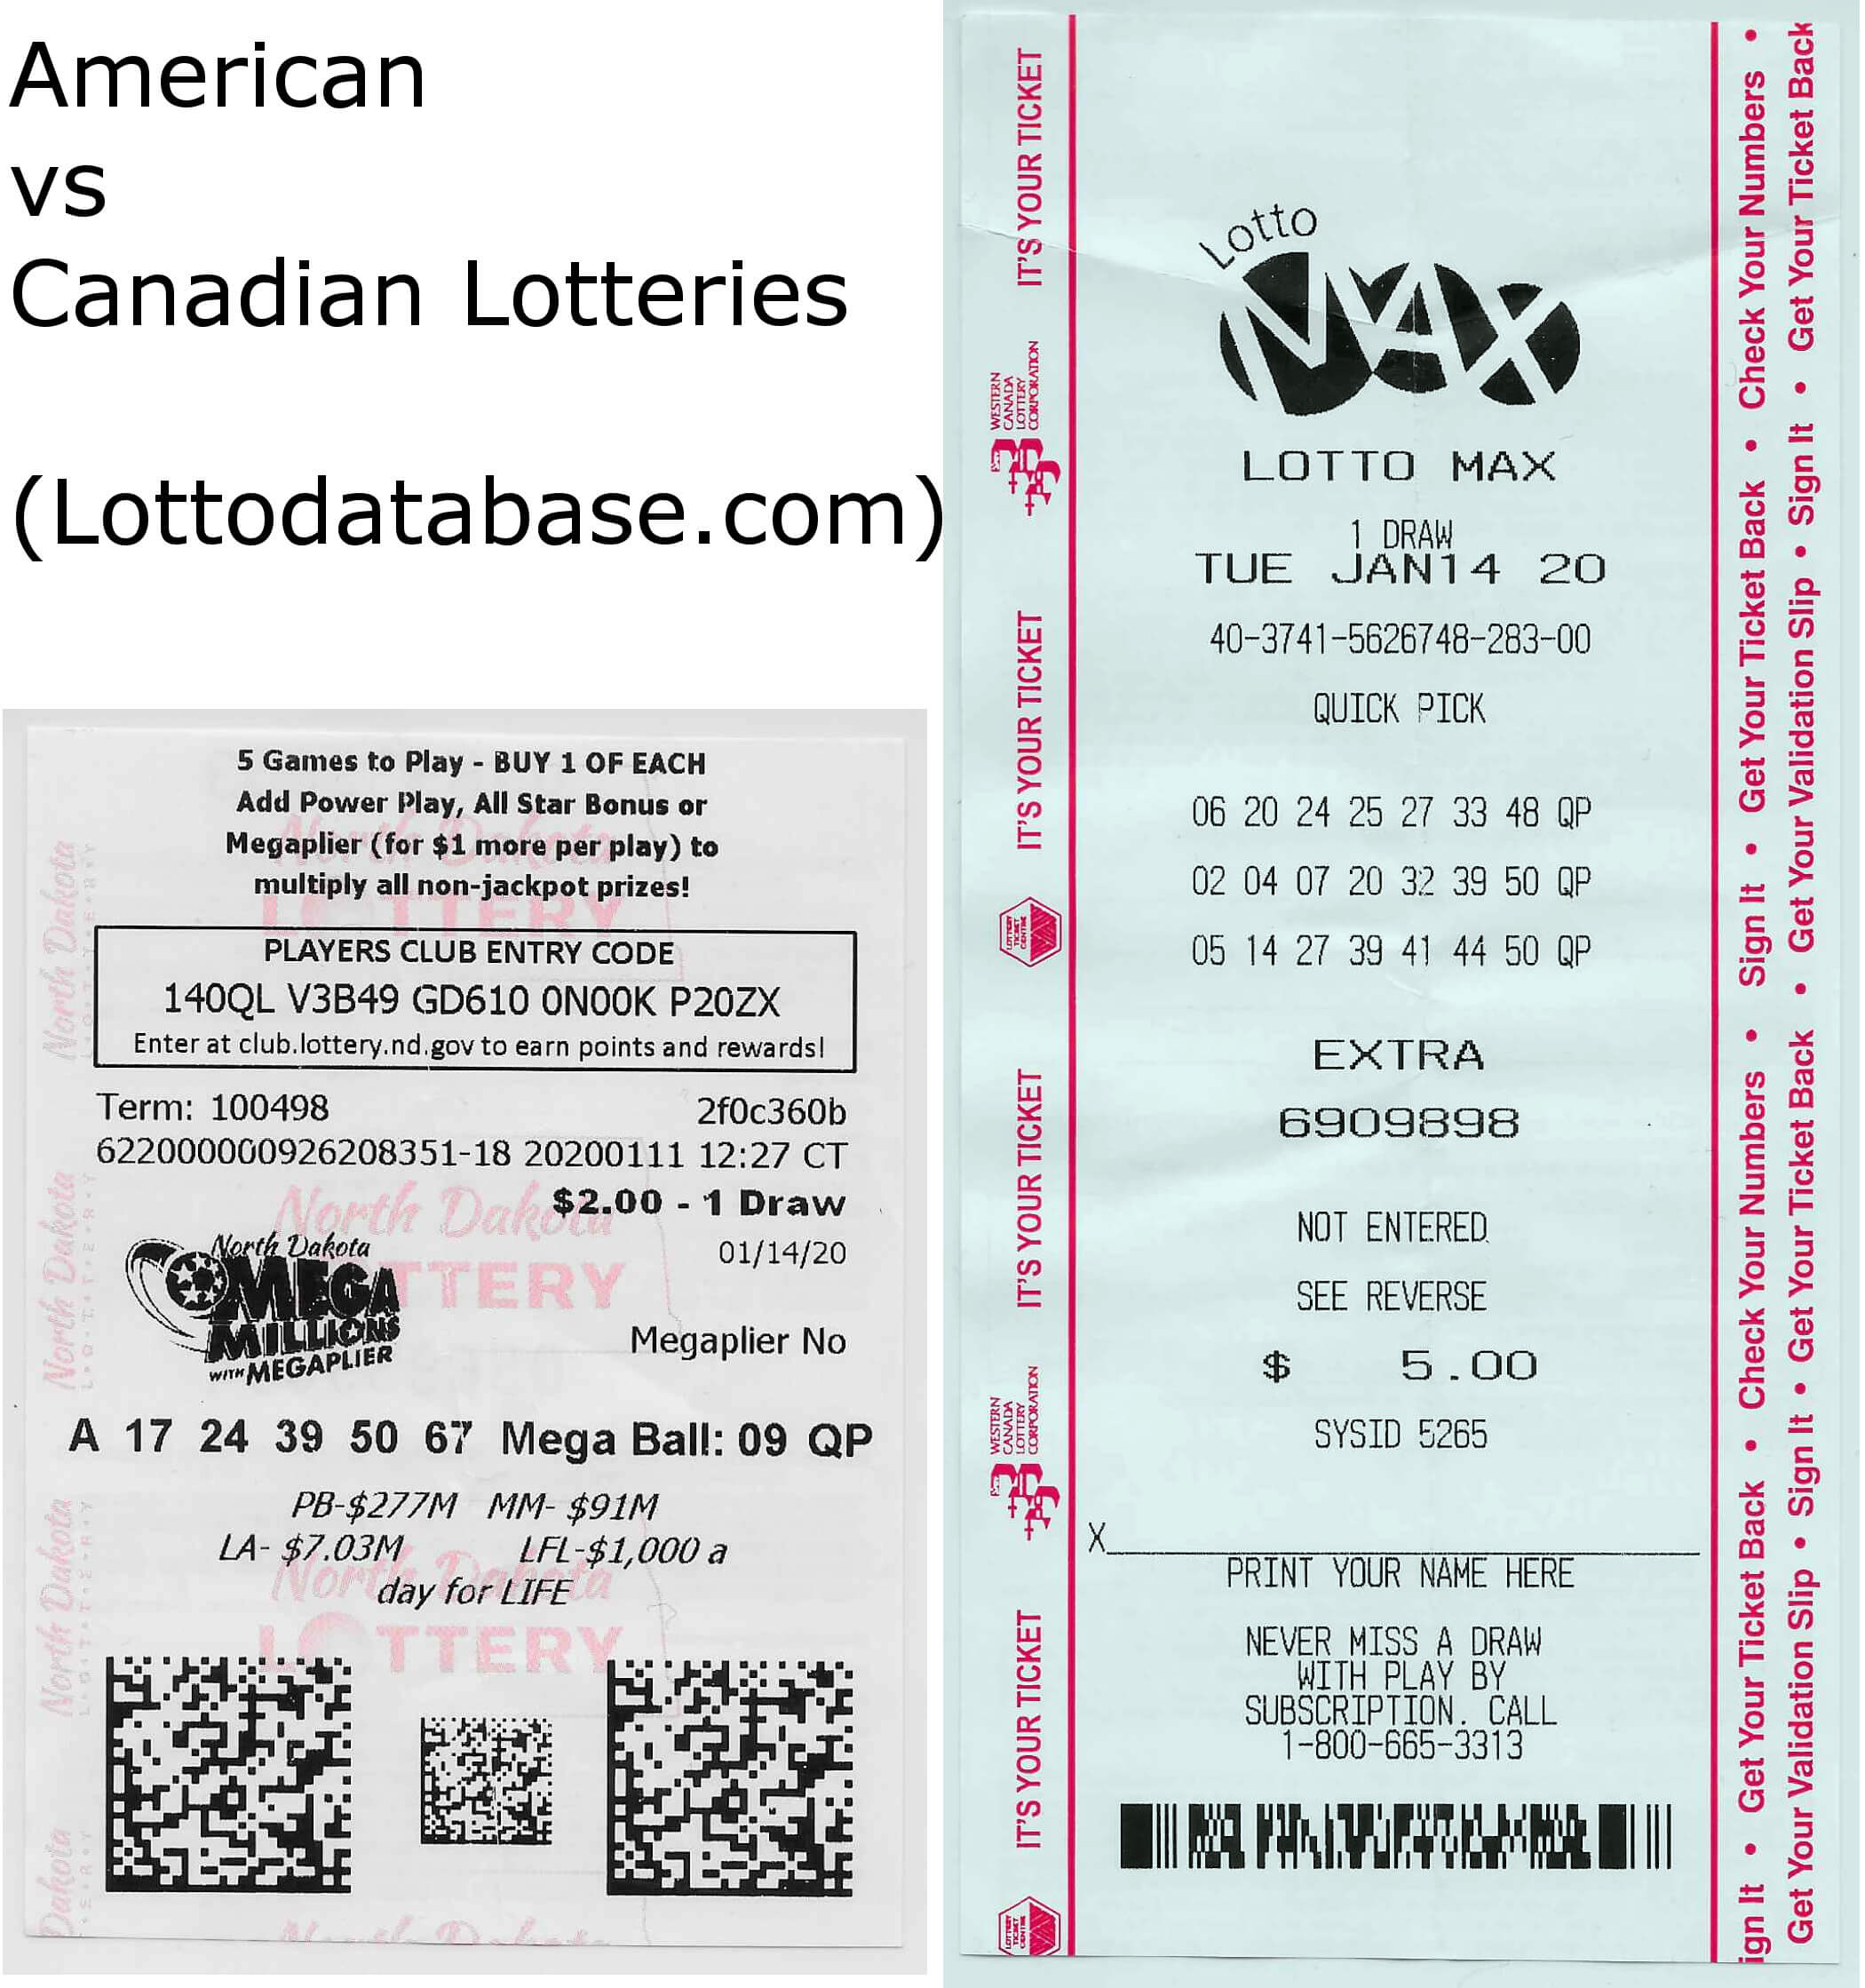 Difference Between American and Canadian Lotteries